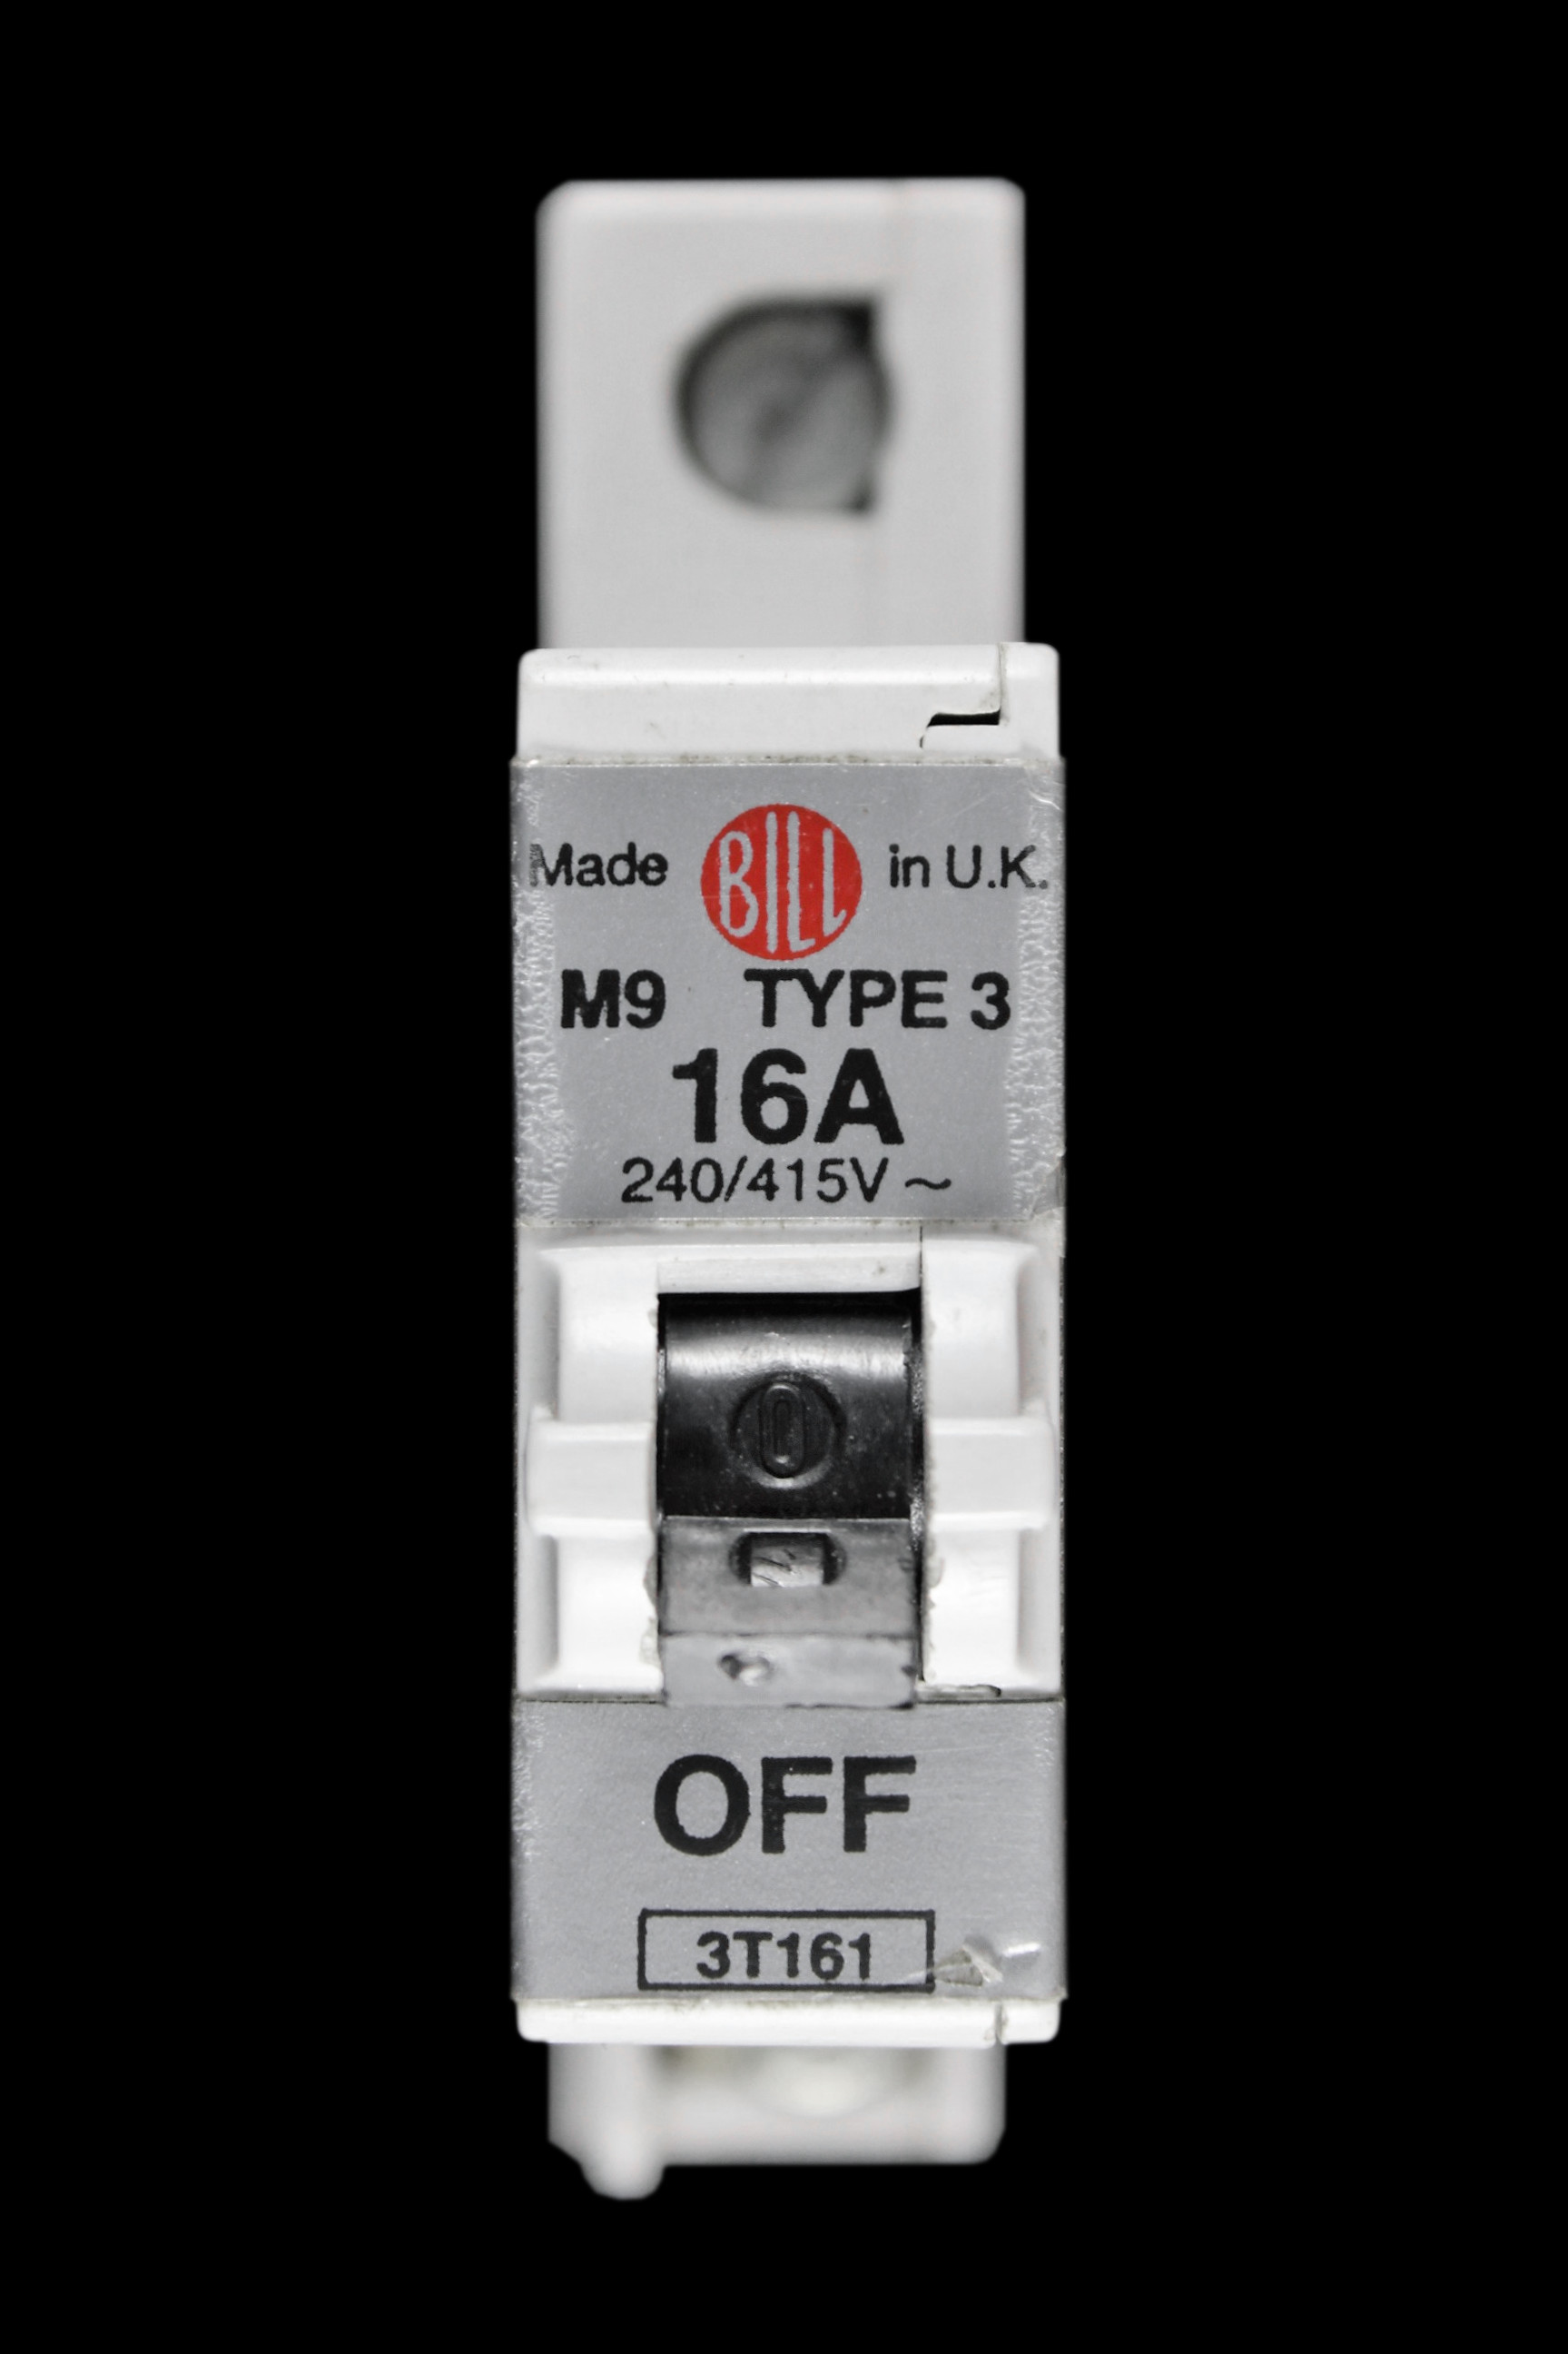 BILL 16 AMP TYPE 3 M9 MCB CIRCUIT BREAKER 3T161